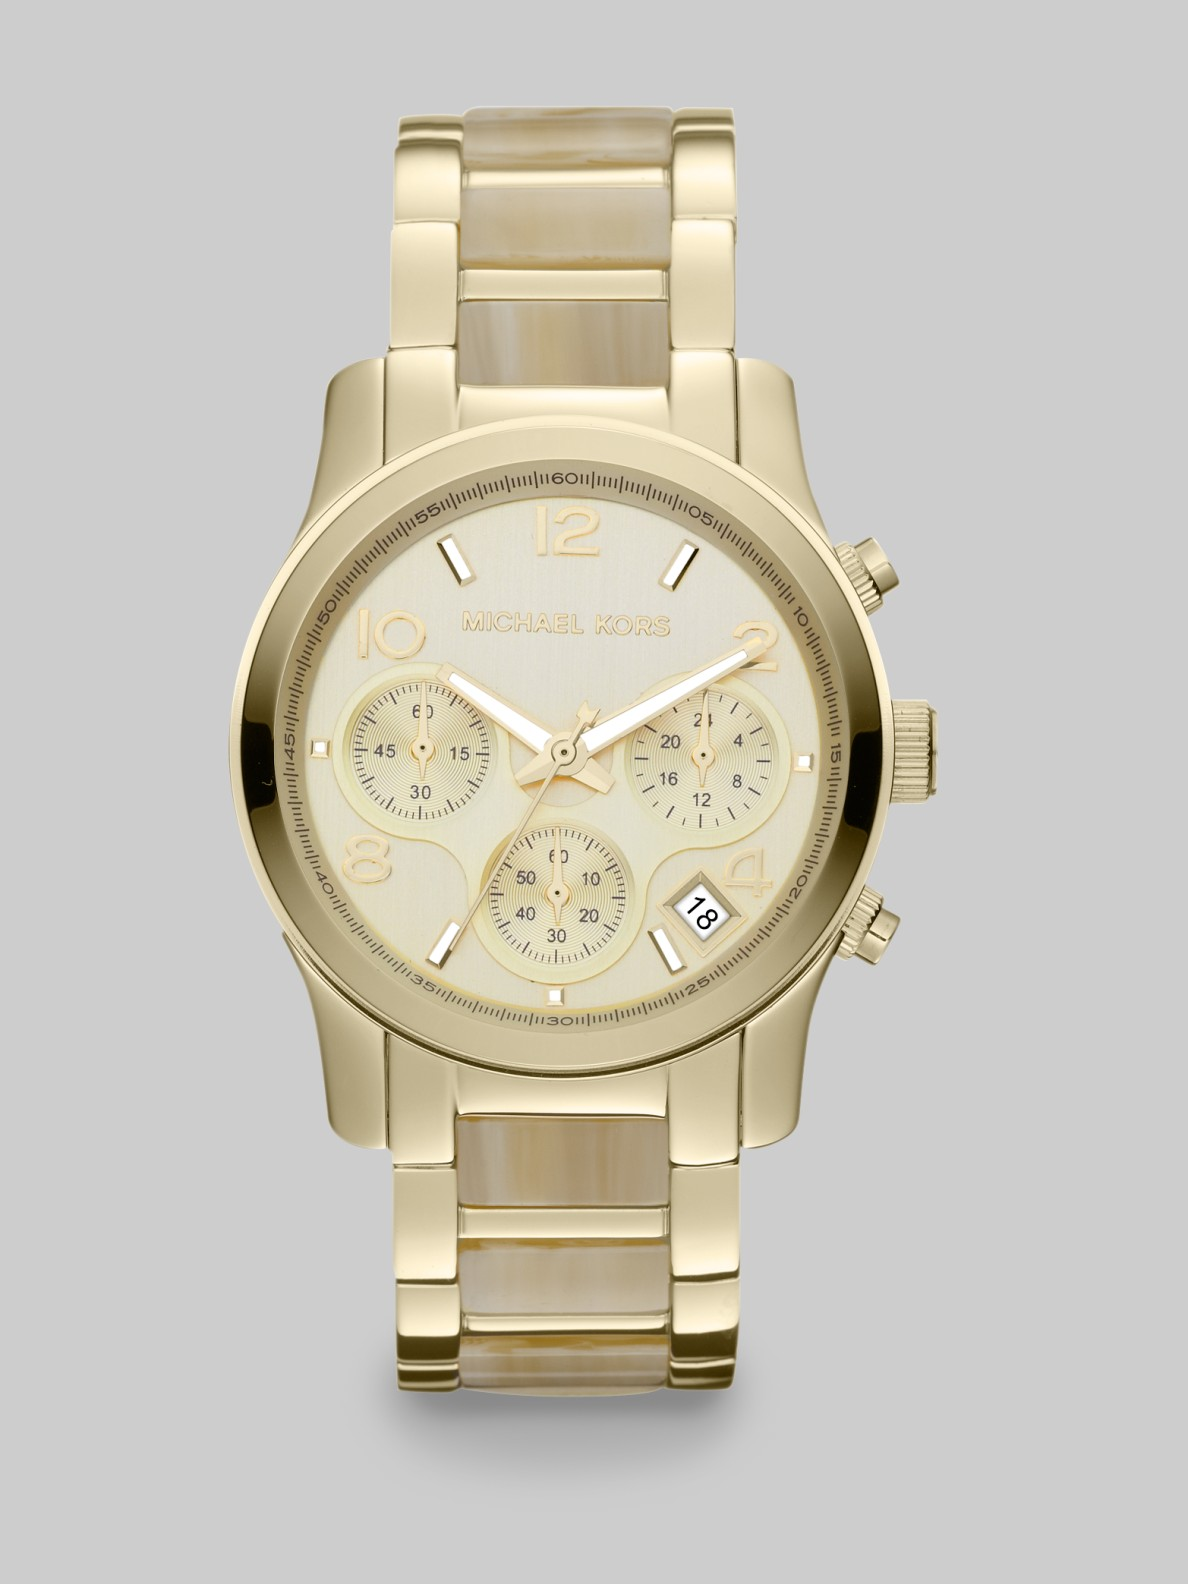 136495a0ef4b Faux Michael Kors Watch - cheap watches mgc-gas.com